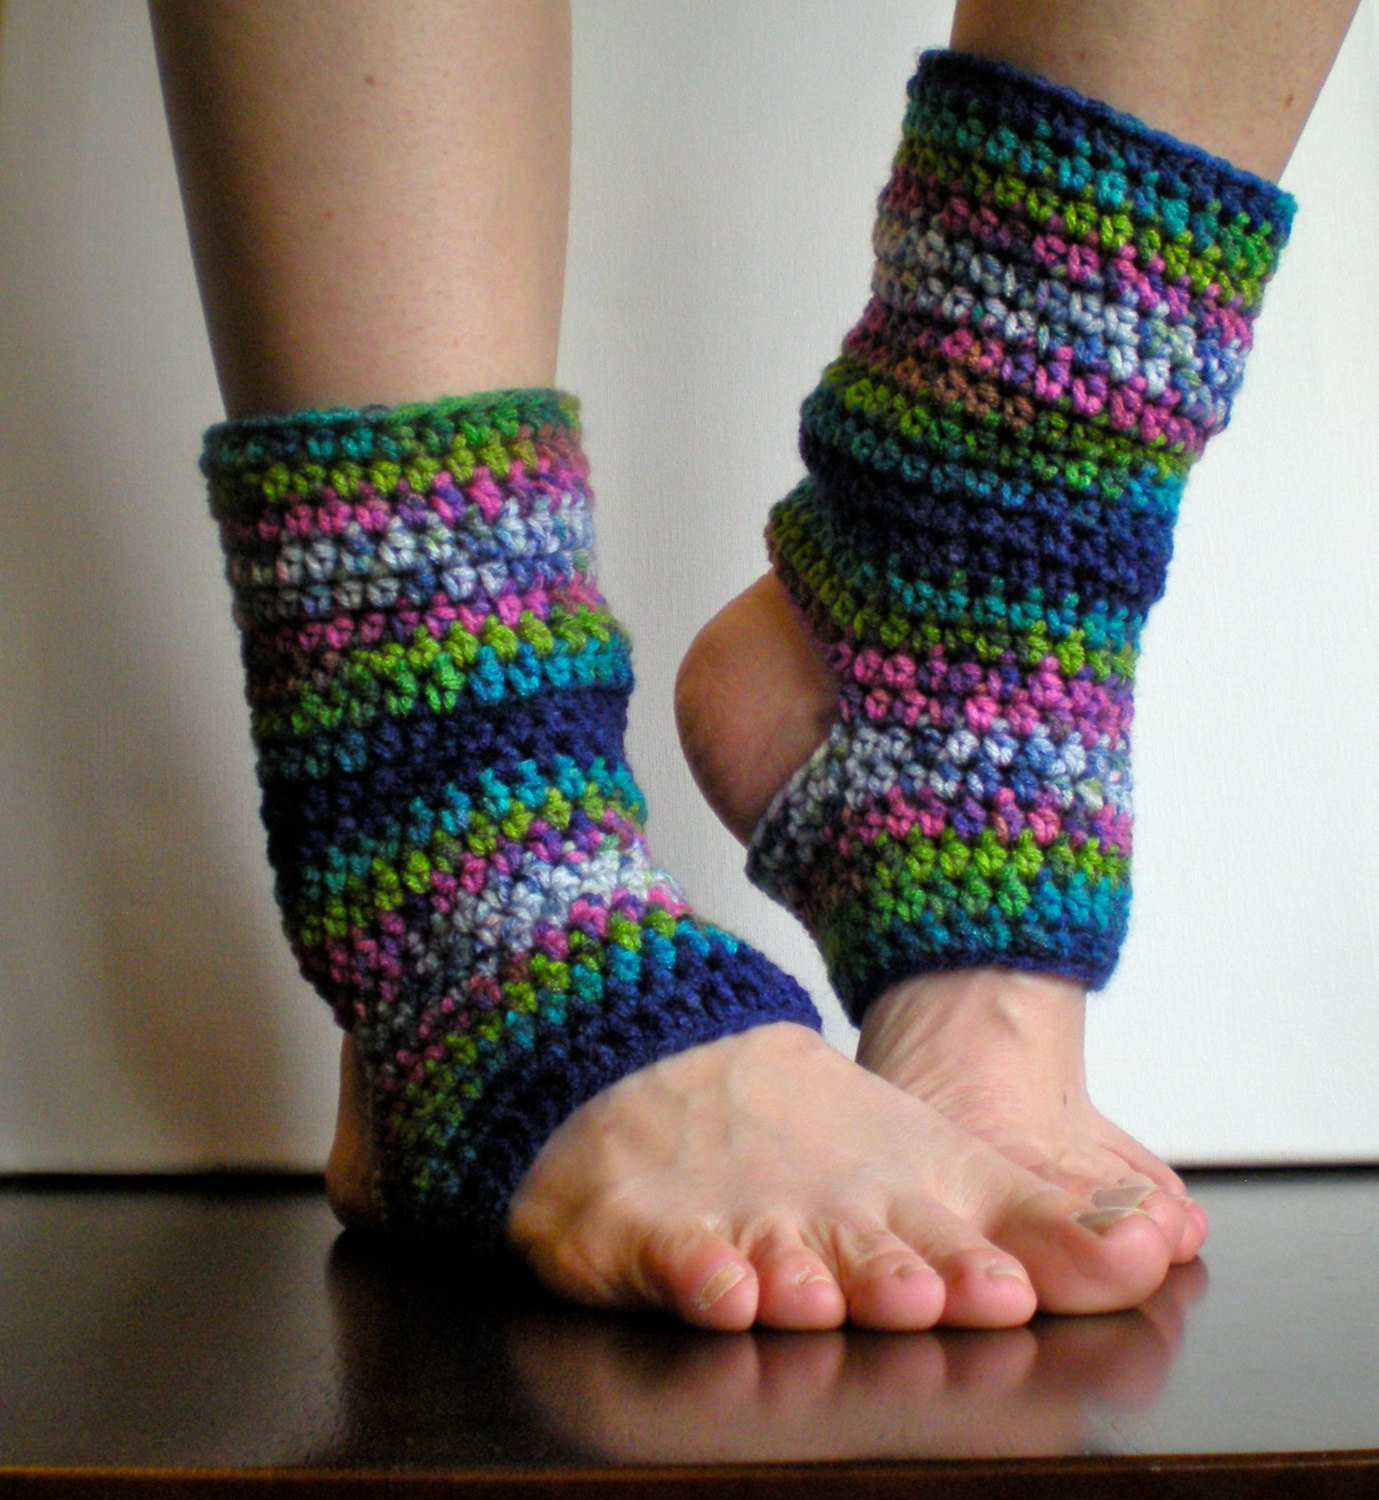 Unique Pattern Short Warmers Easy Crochet Pdf Leg Warmers Yoga Crochet Yoga socks Of Brilliant 48 Pictures Crochet Yoga socks